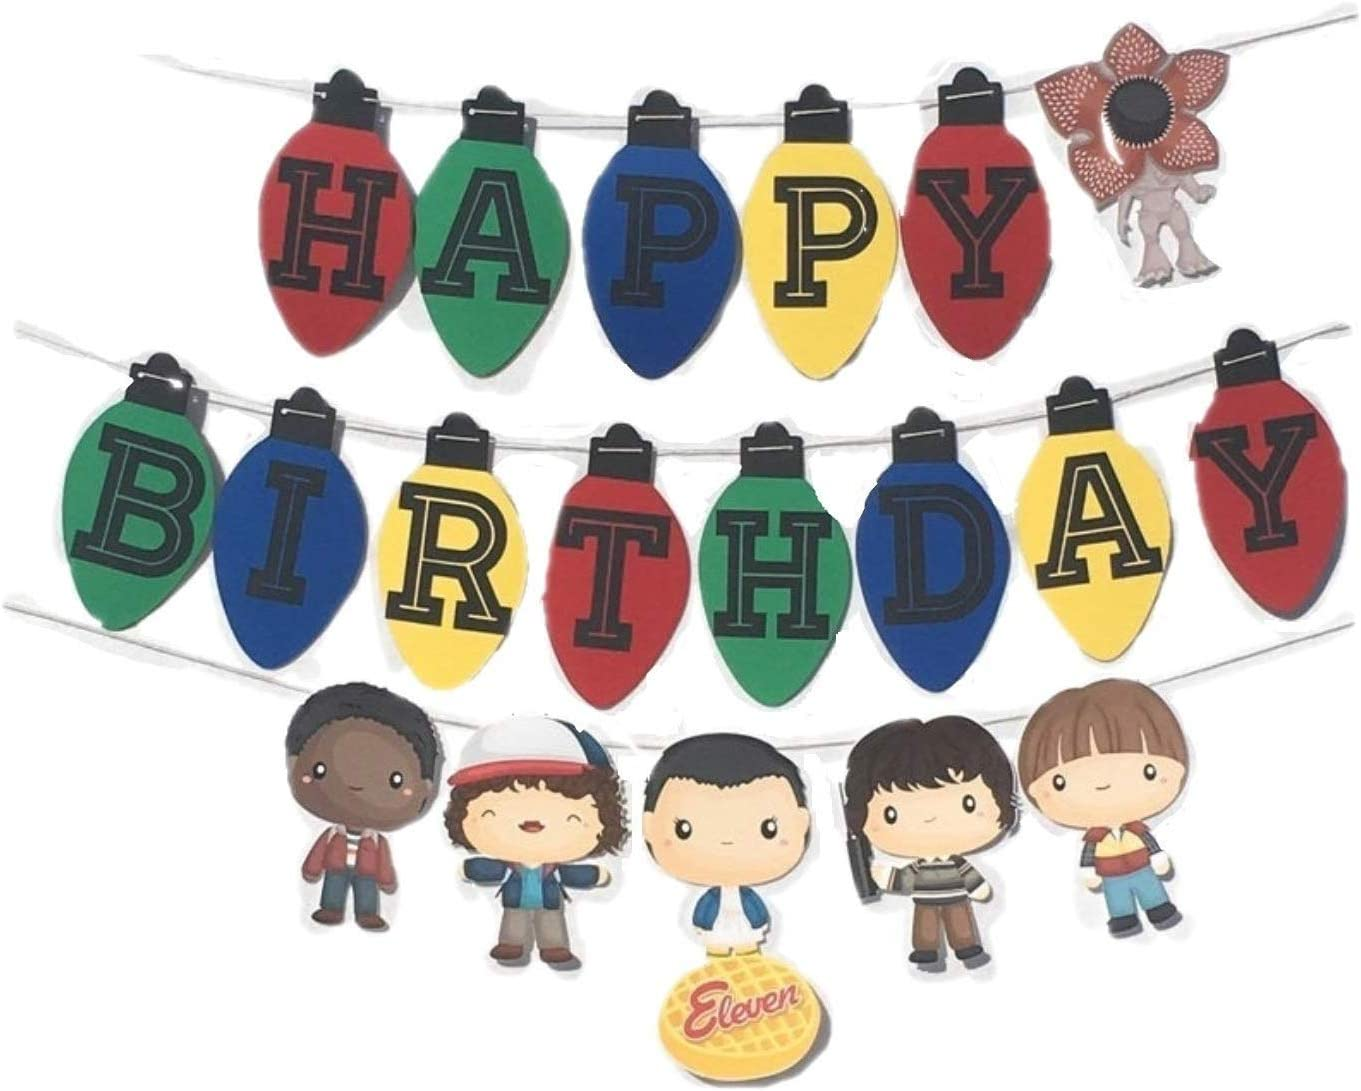 Vercico Birthday Party Banner for Eleven Things Themed Party Supplies Happy Birthday Banner Joyce Byers Lights Shaped Bunting Banner